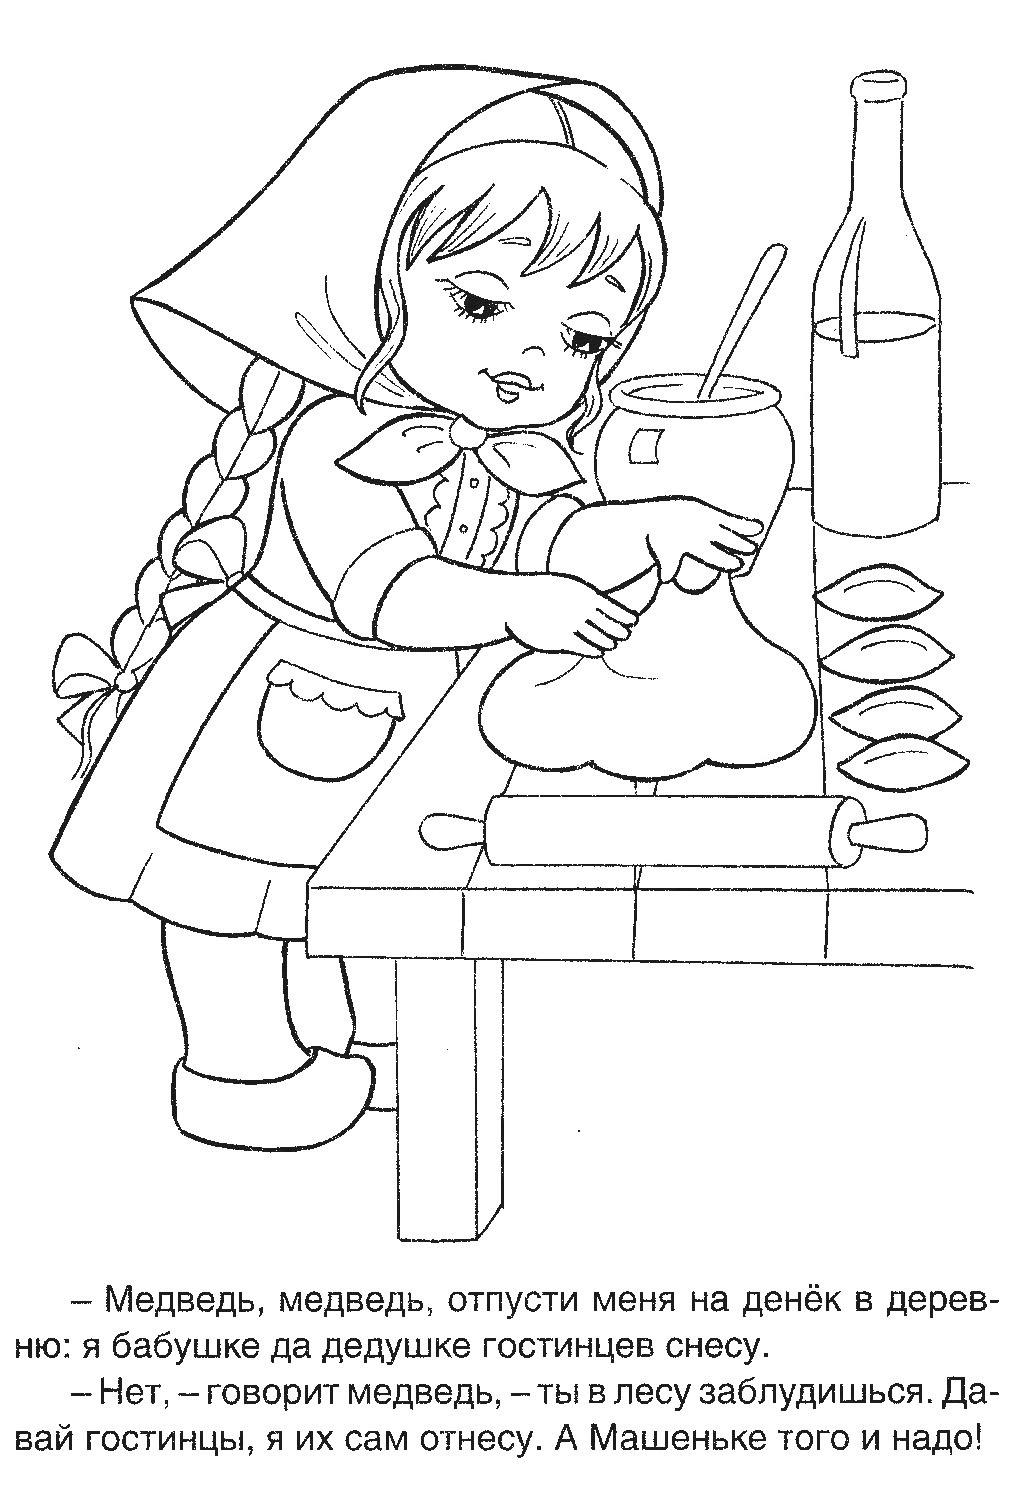 Coloring coloring pages to the tale Masha and the Bear Mary prepares pies, coloring pages Masha and the Bear